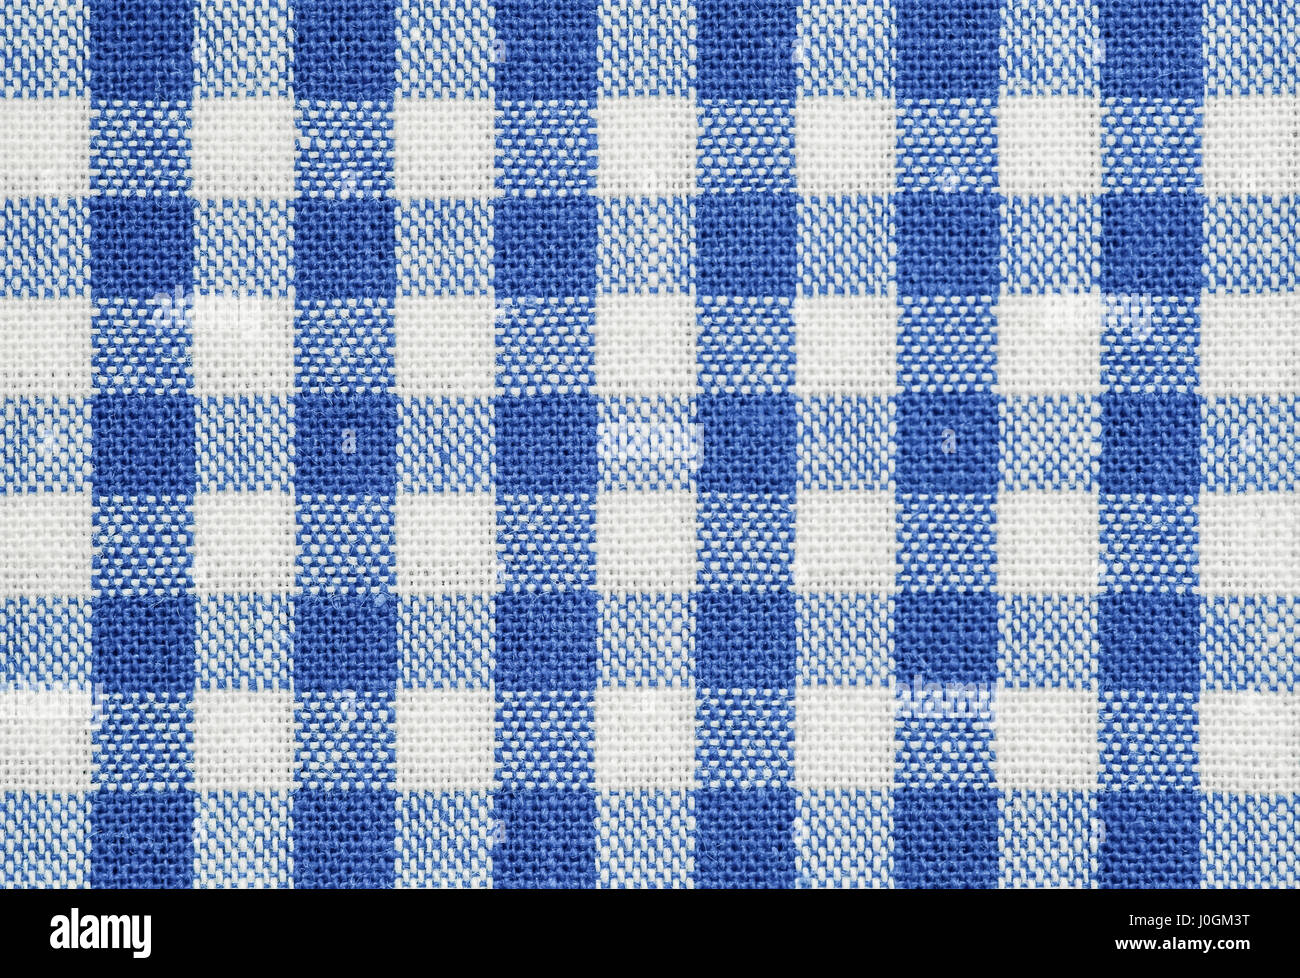 Genial Background Of Blue And White Check Tablecloth Fabric